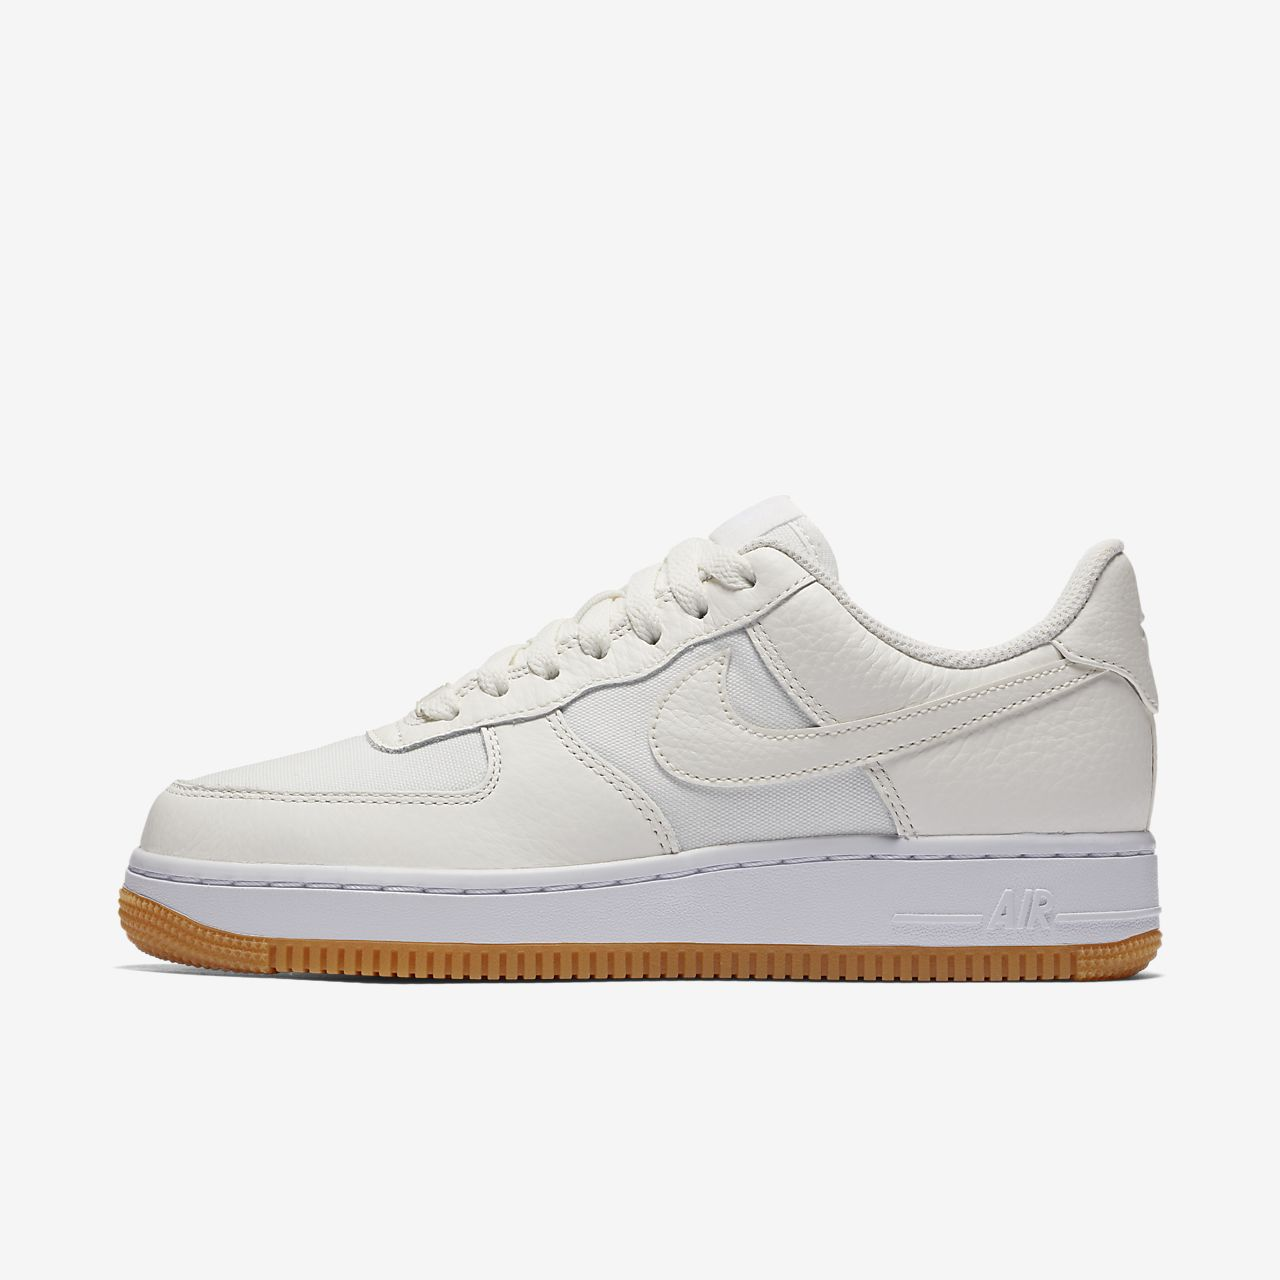 nike air force 1 low id women's